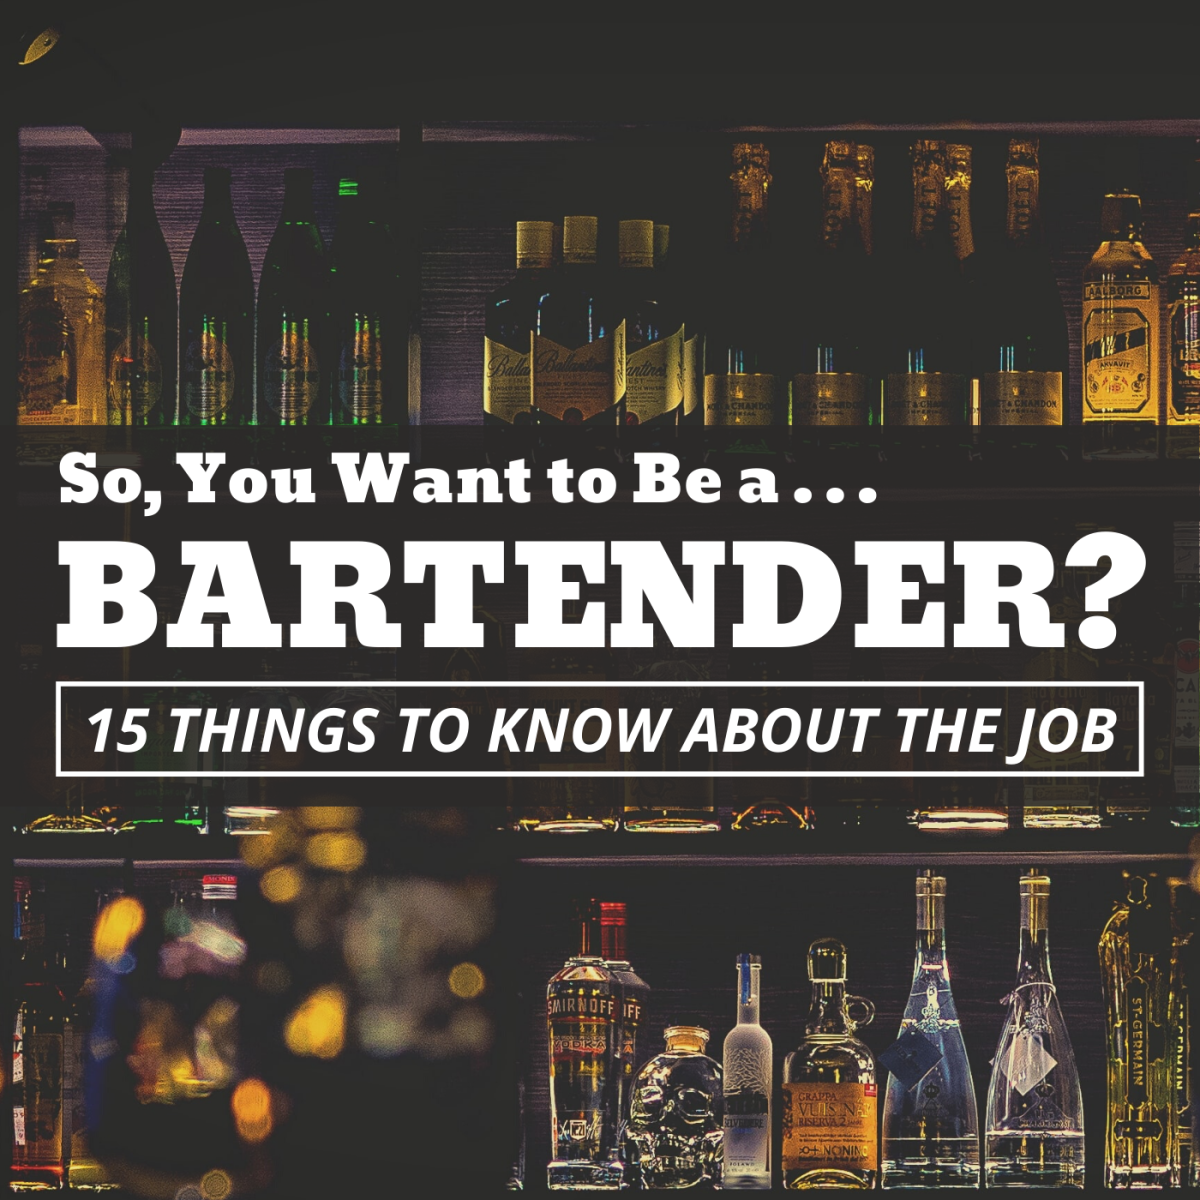 Like most careers, bartending has its ups and downs. Here's a look at 15 aspects of the job that a lot of people don't think about.